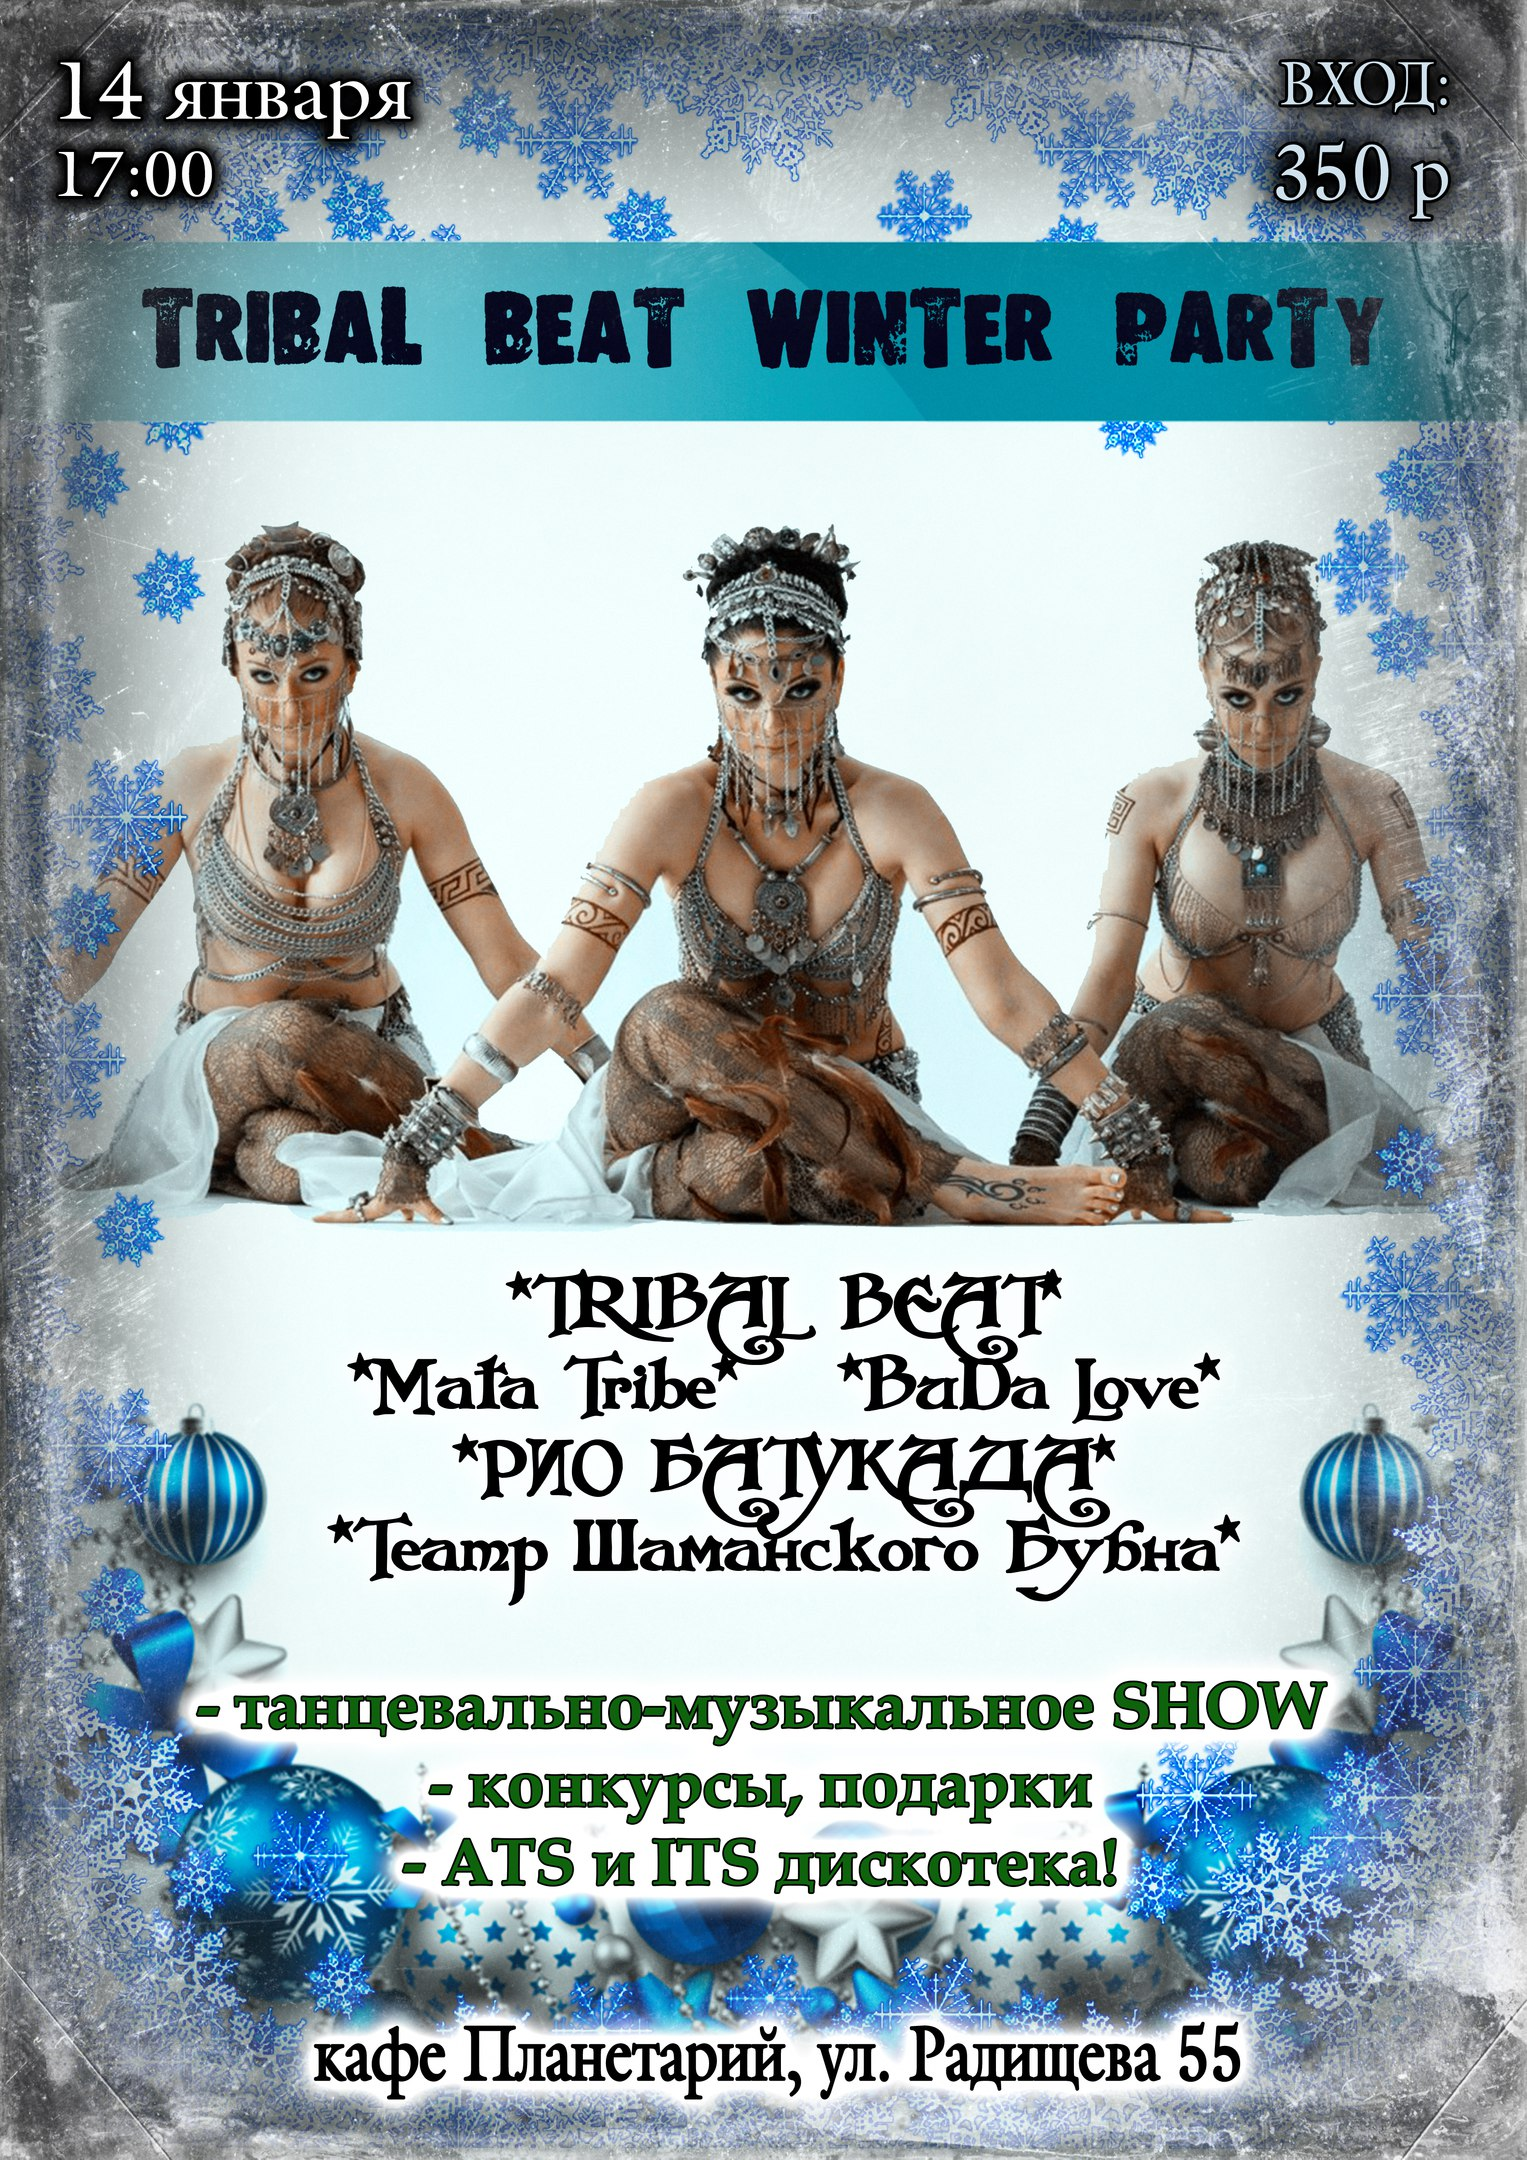 TRIBAL BEAT WINTER PARTY